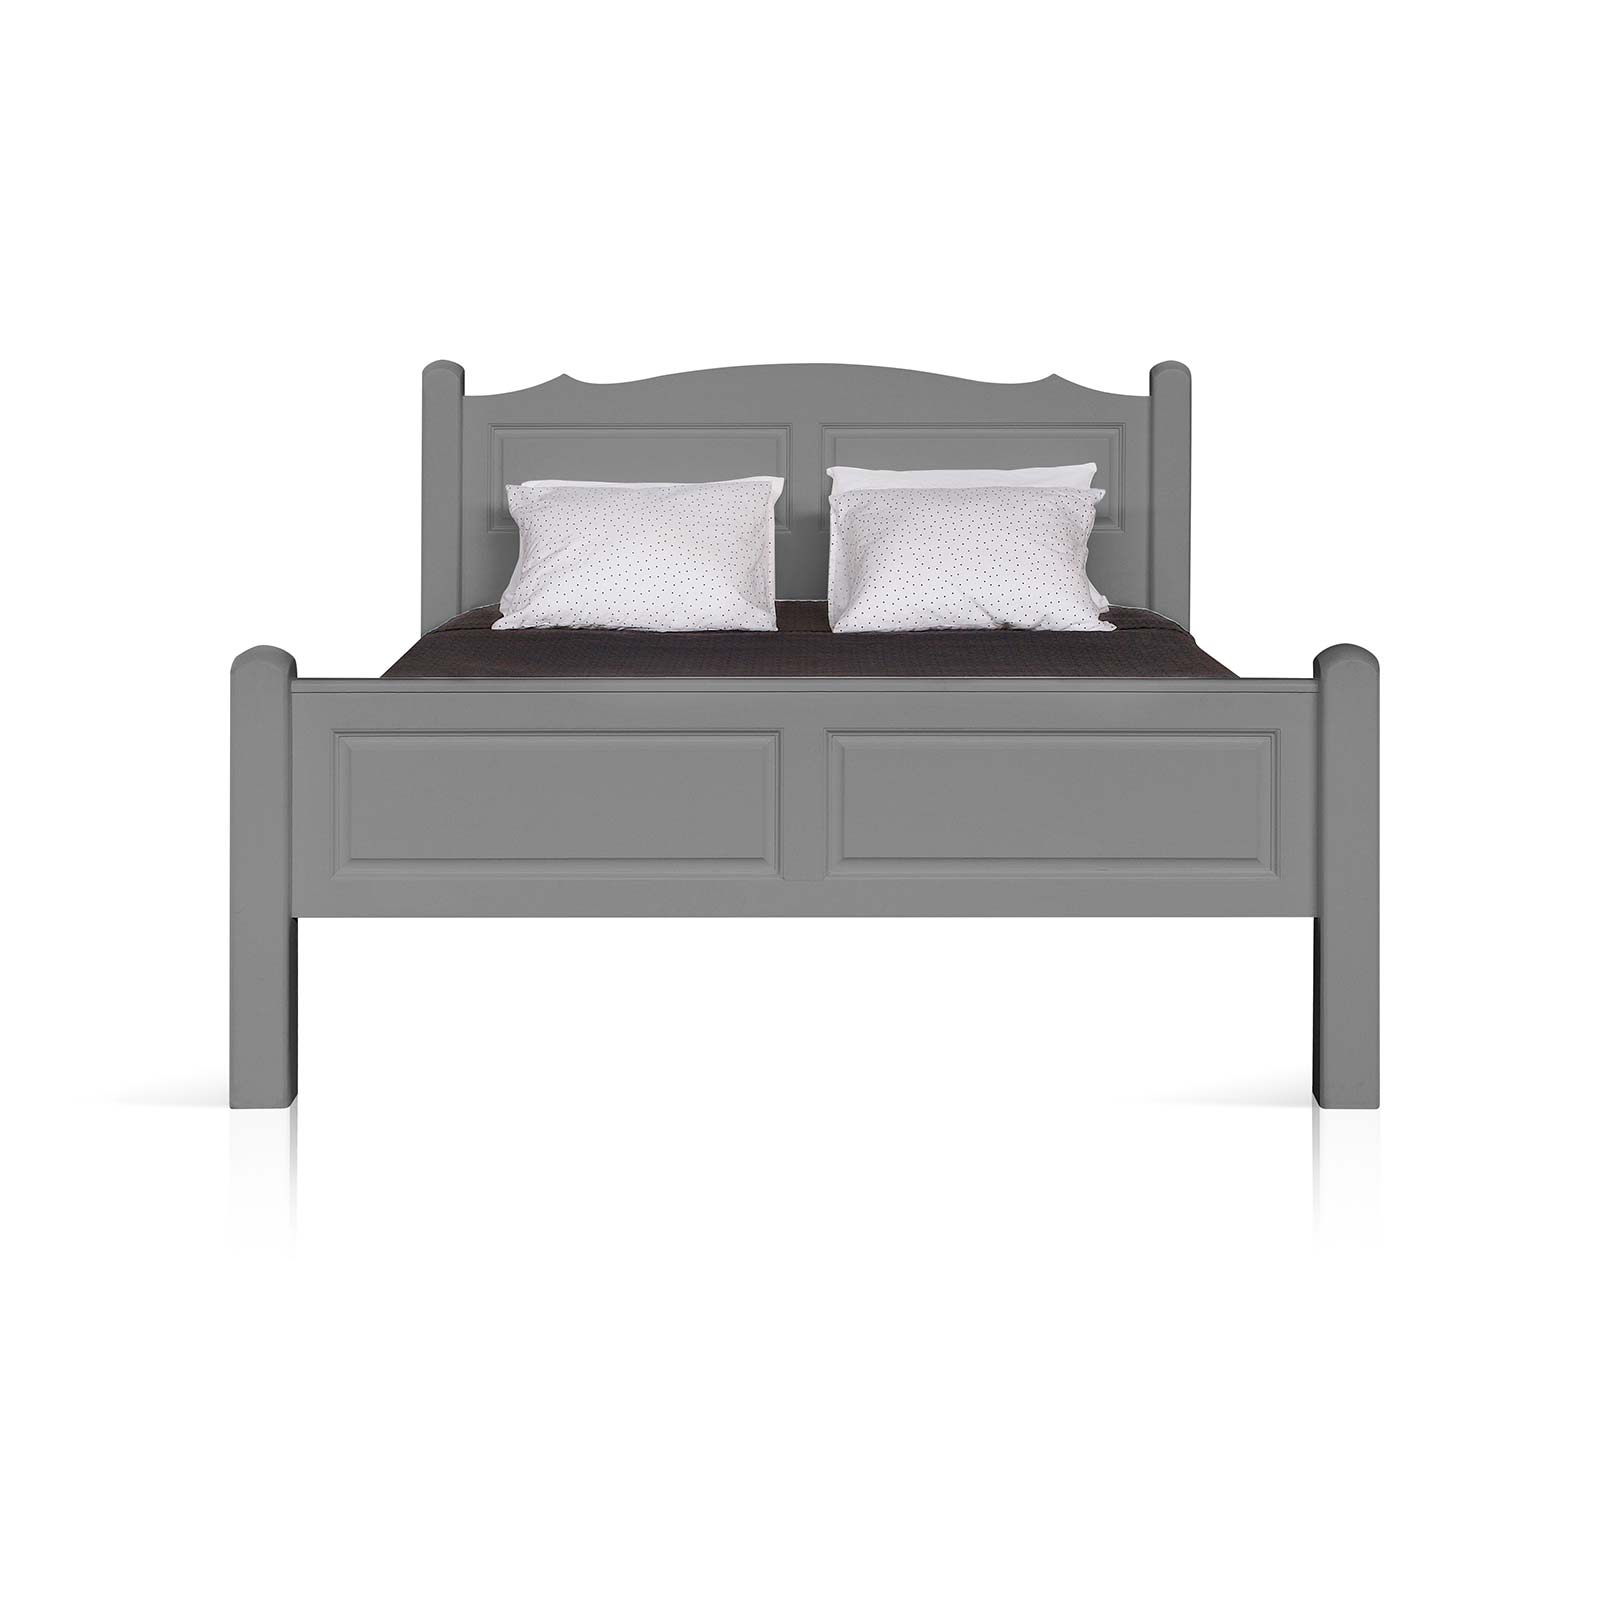 Beyond Home The Soho Painted Furniture Collection Double - Kingsize Bed Frame in Grey